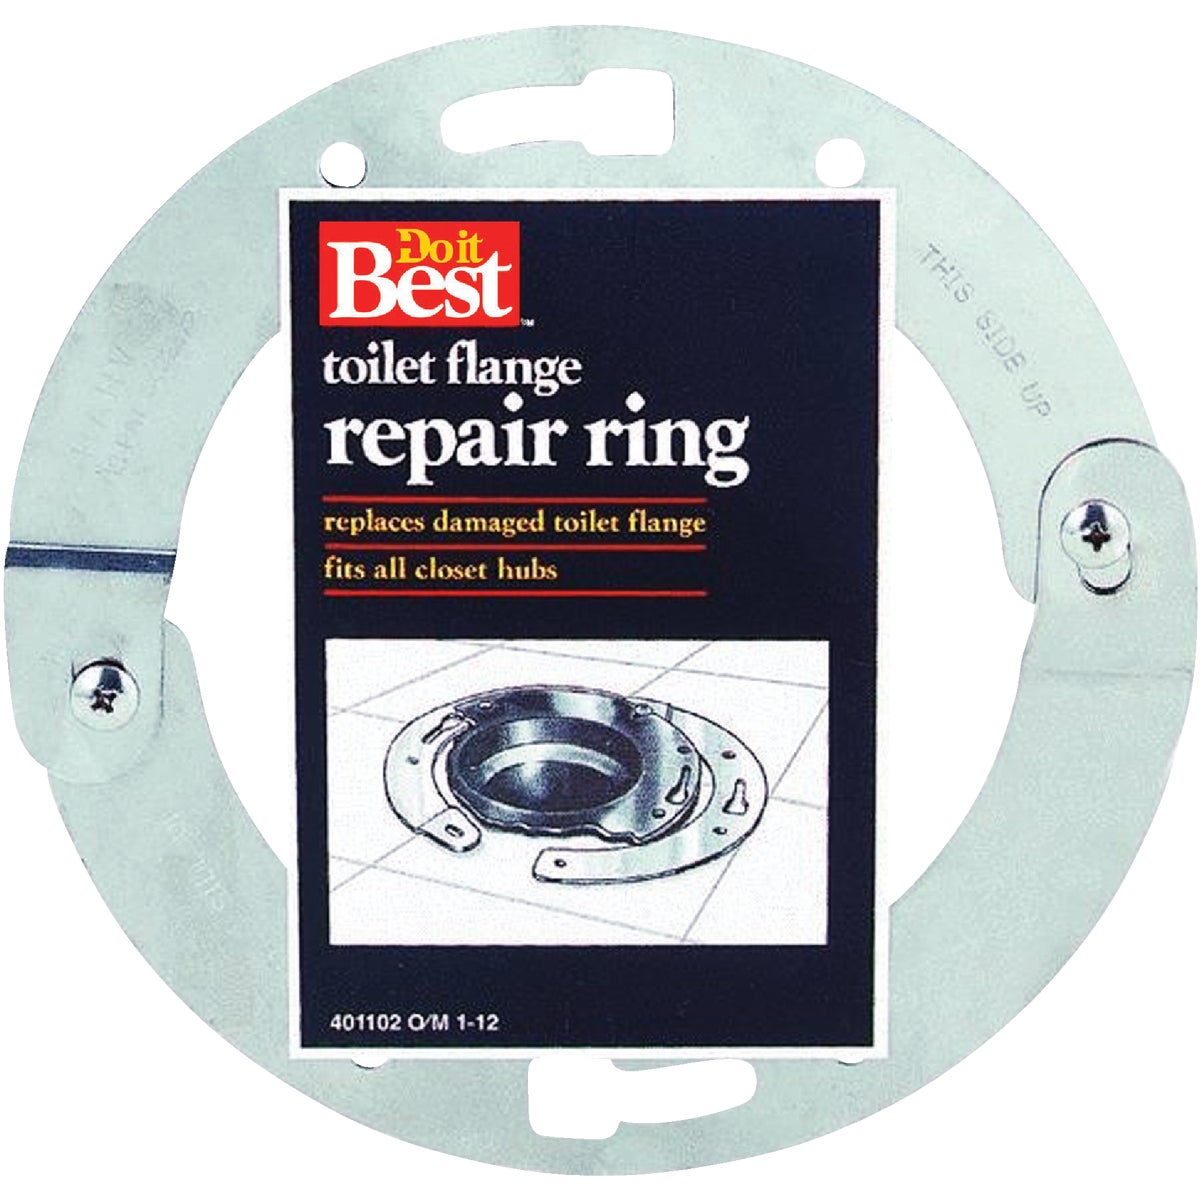 TOILET FLANG REPAIR RING - 014712 by Wm H Harvey Co